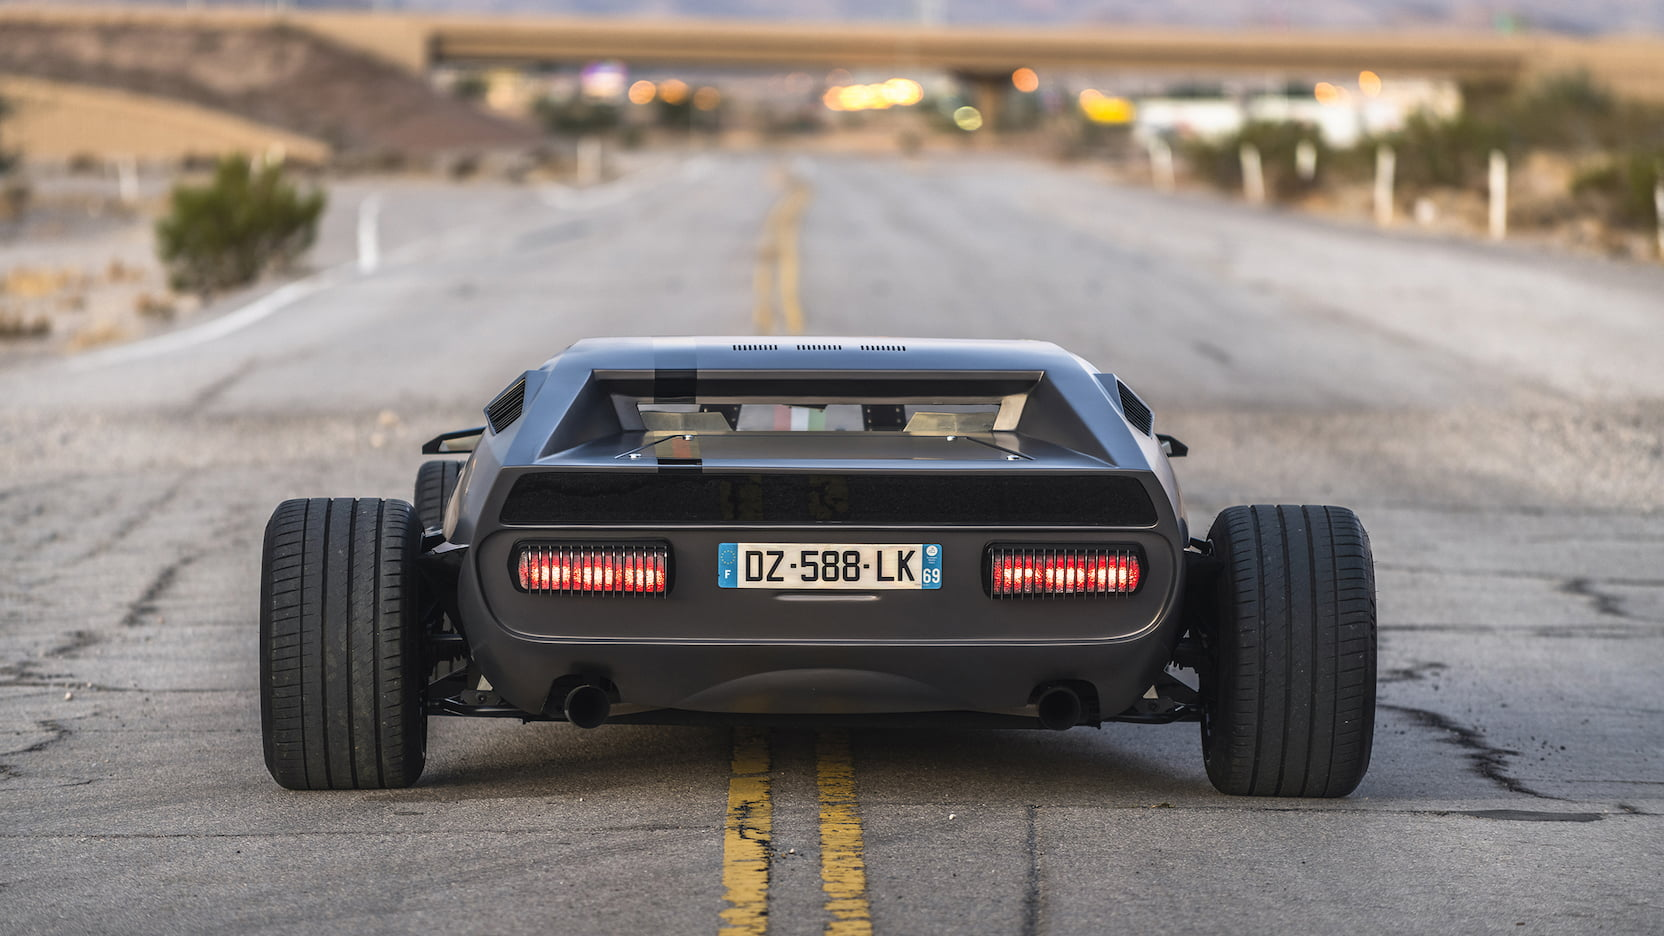 Lamborghini-Espada-Hot-Rod-for-sale-8